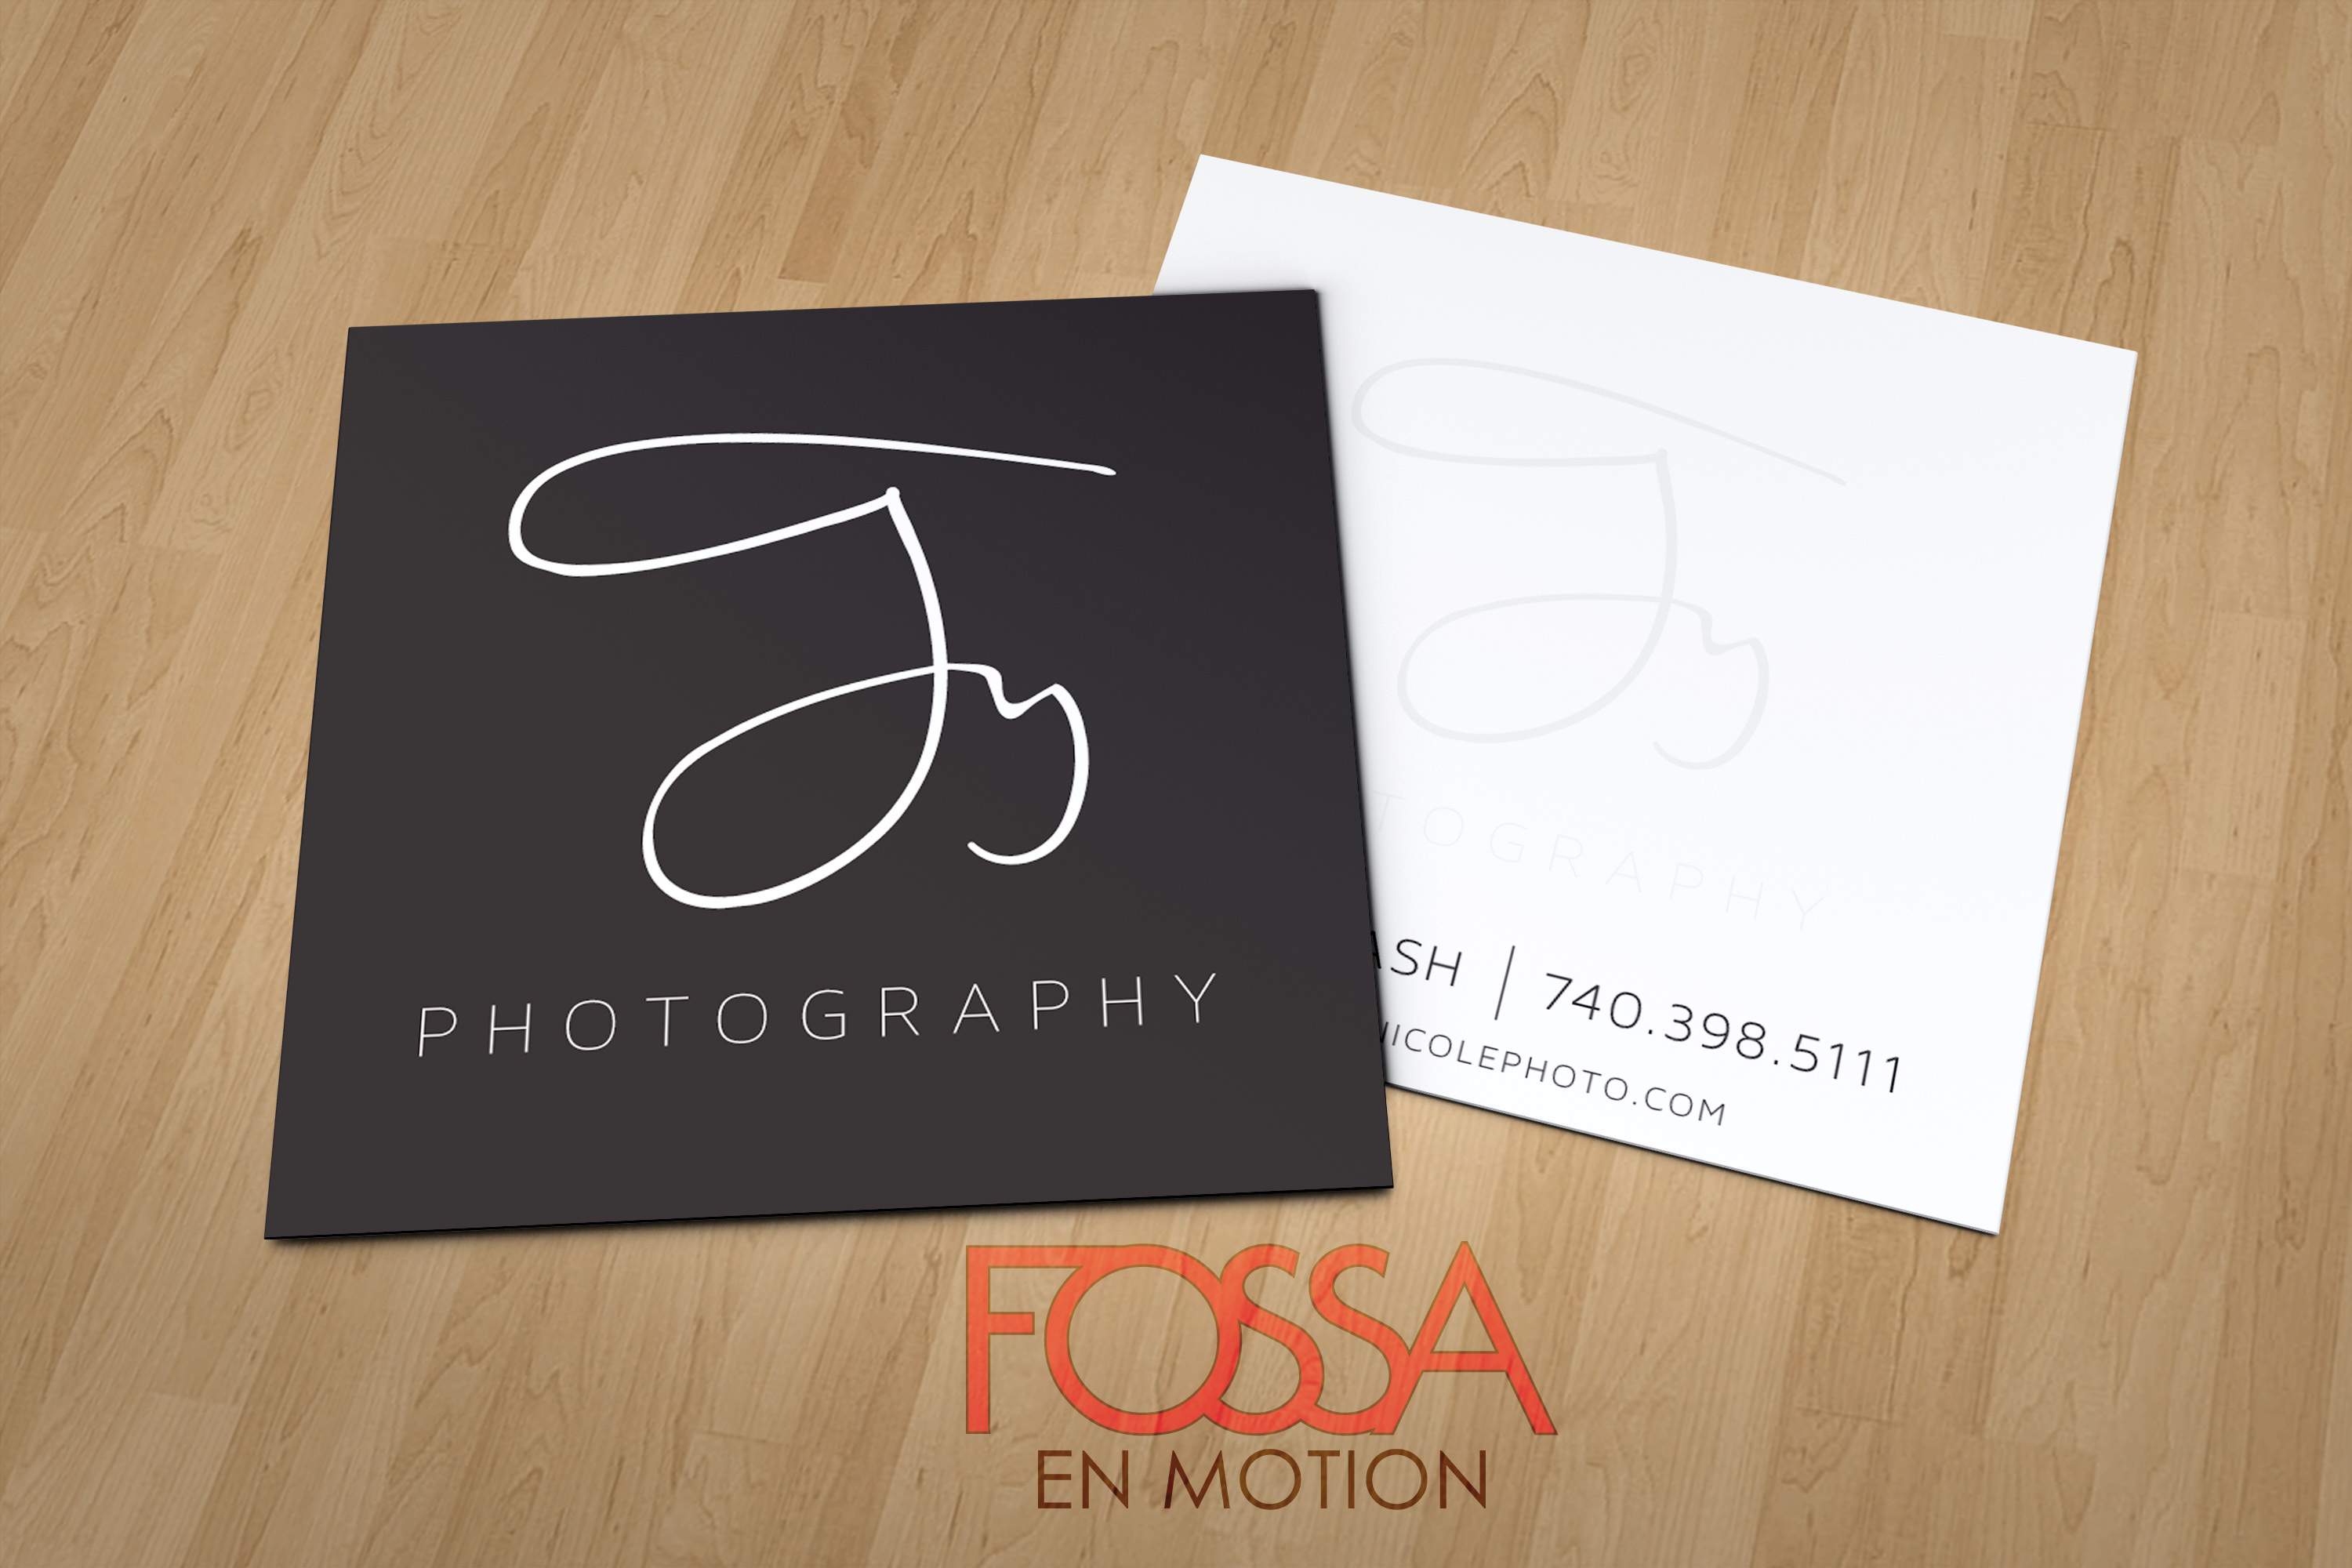 Ty nicole photography fossa the client wanted to alter their company image and make it more upscale this was achieved and first implemented with a square business card reheart Image collections